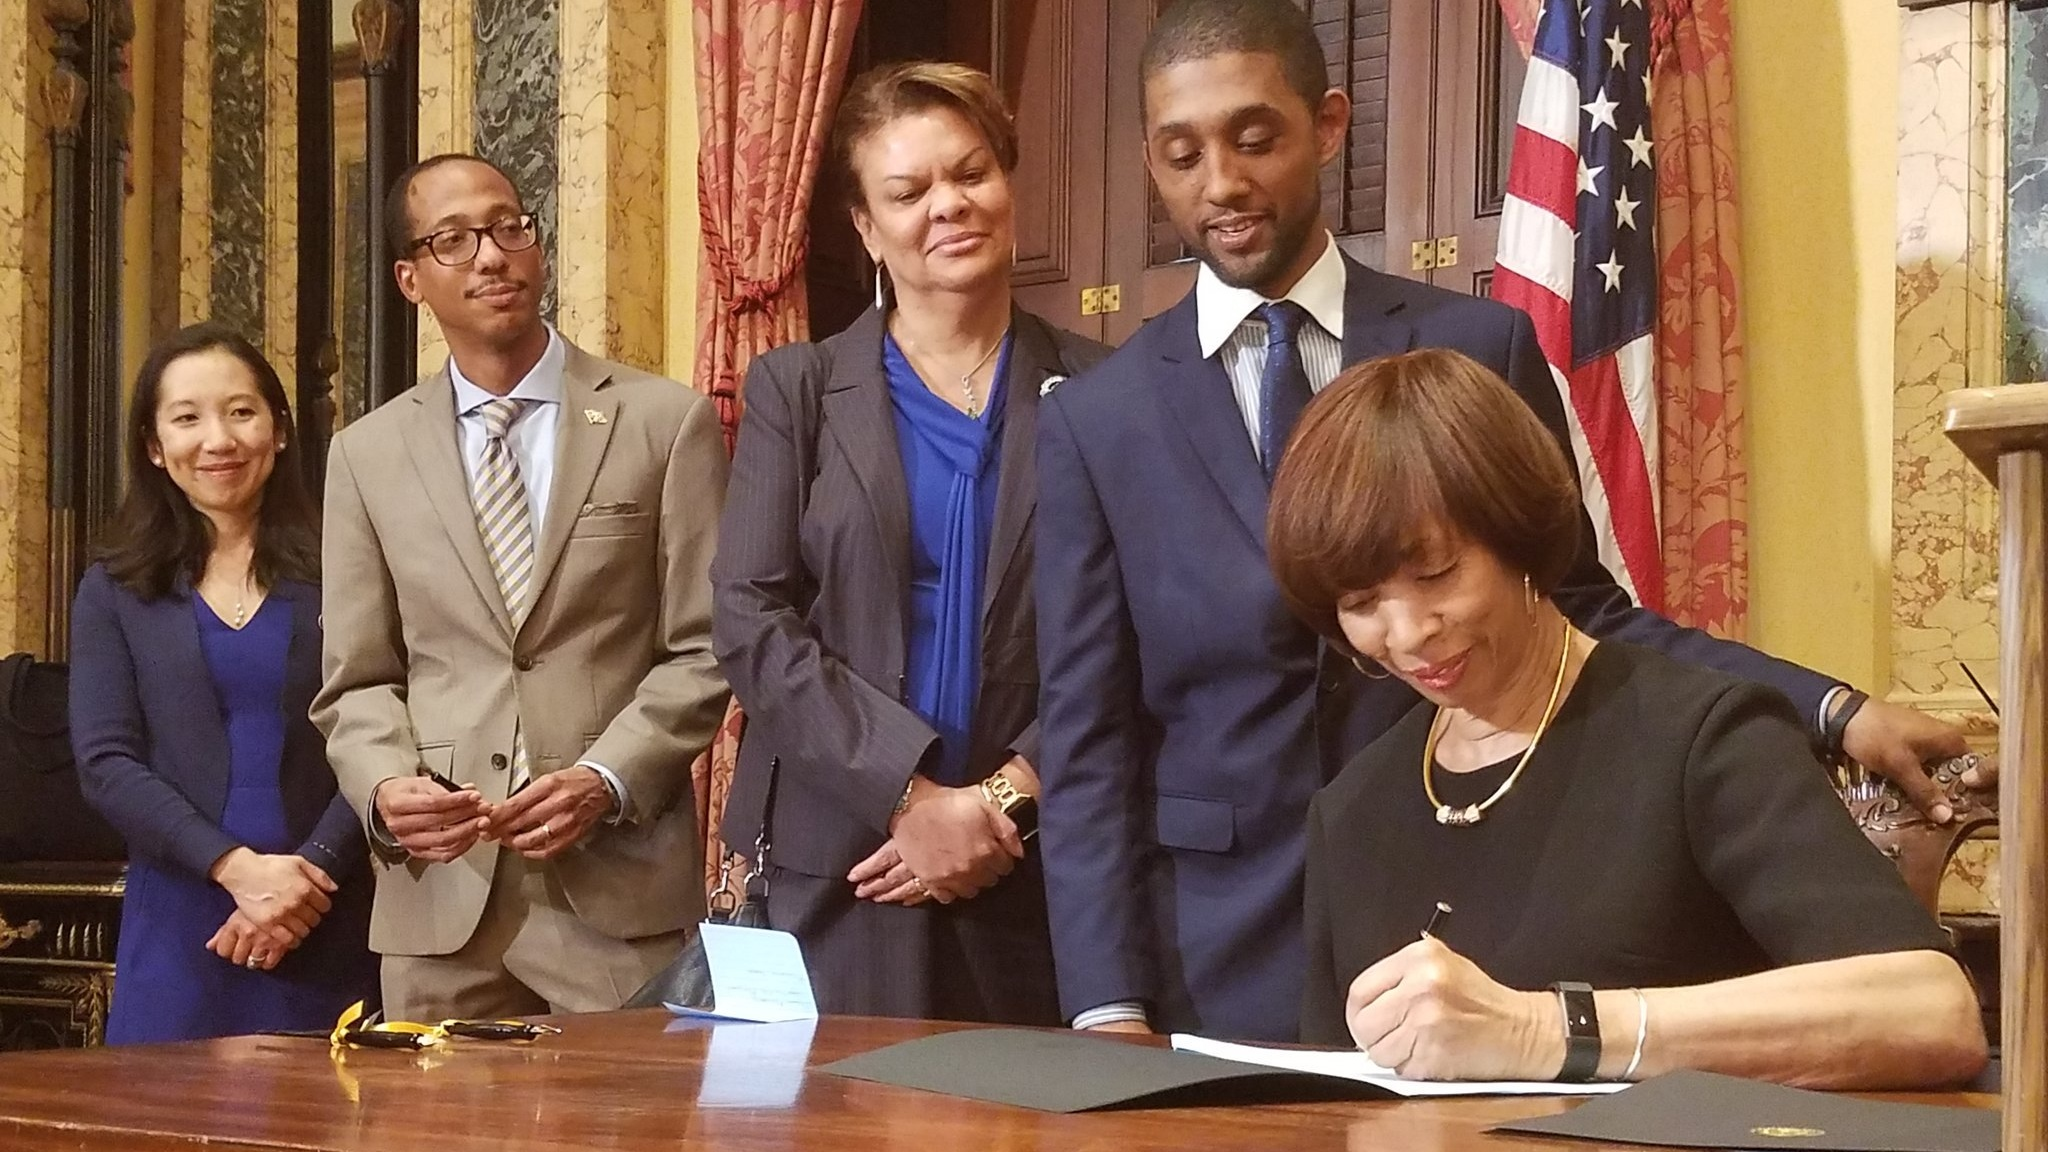 Baltimore City Mayor Catherine Pugh signs the Kids' Meal Bill as the Health Commissioner and Council Members look on.